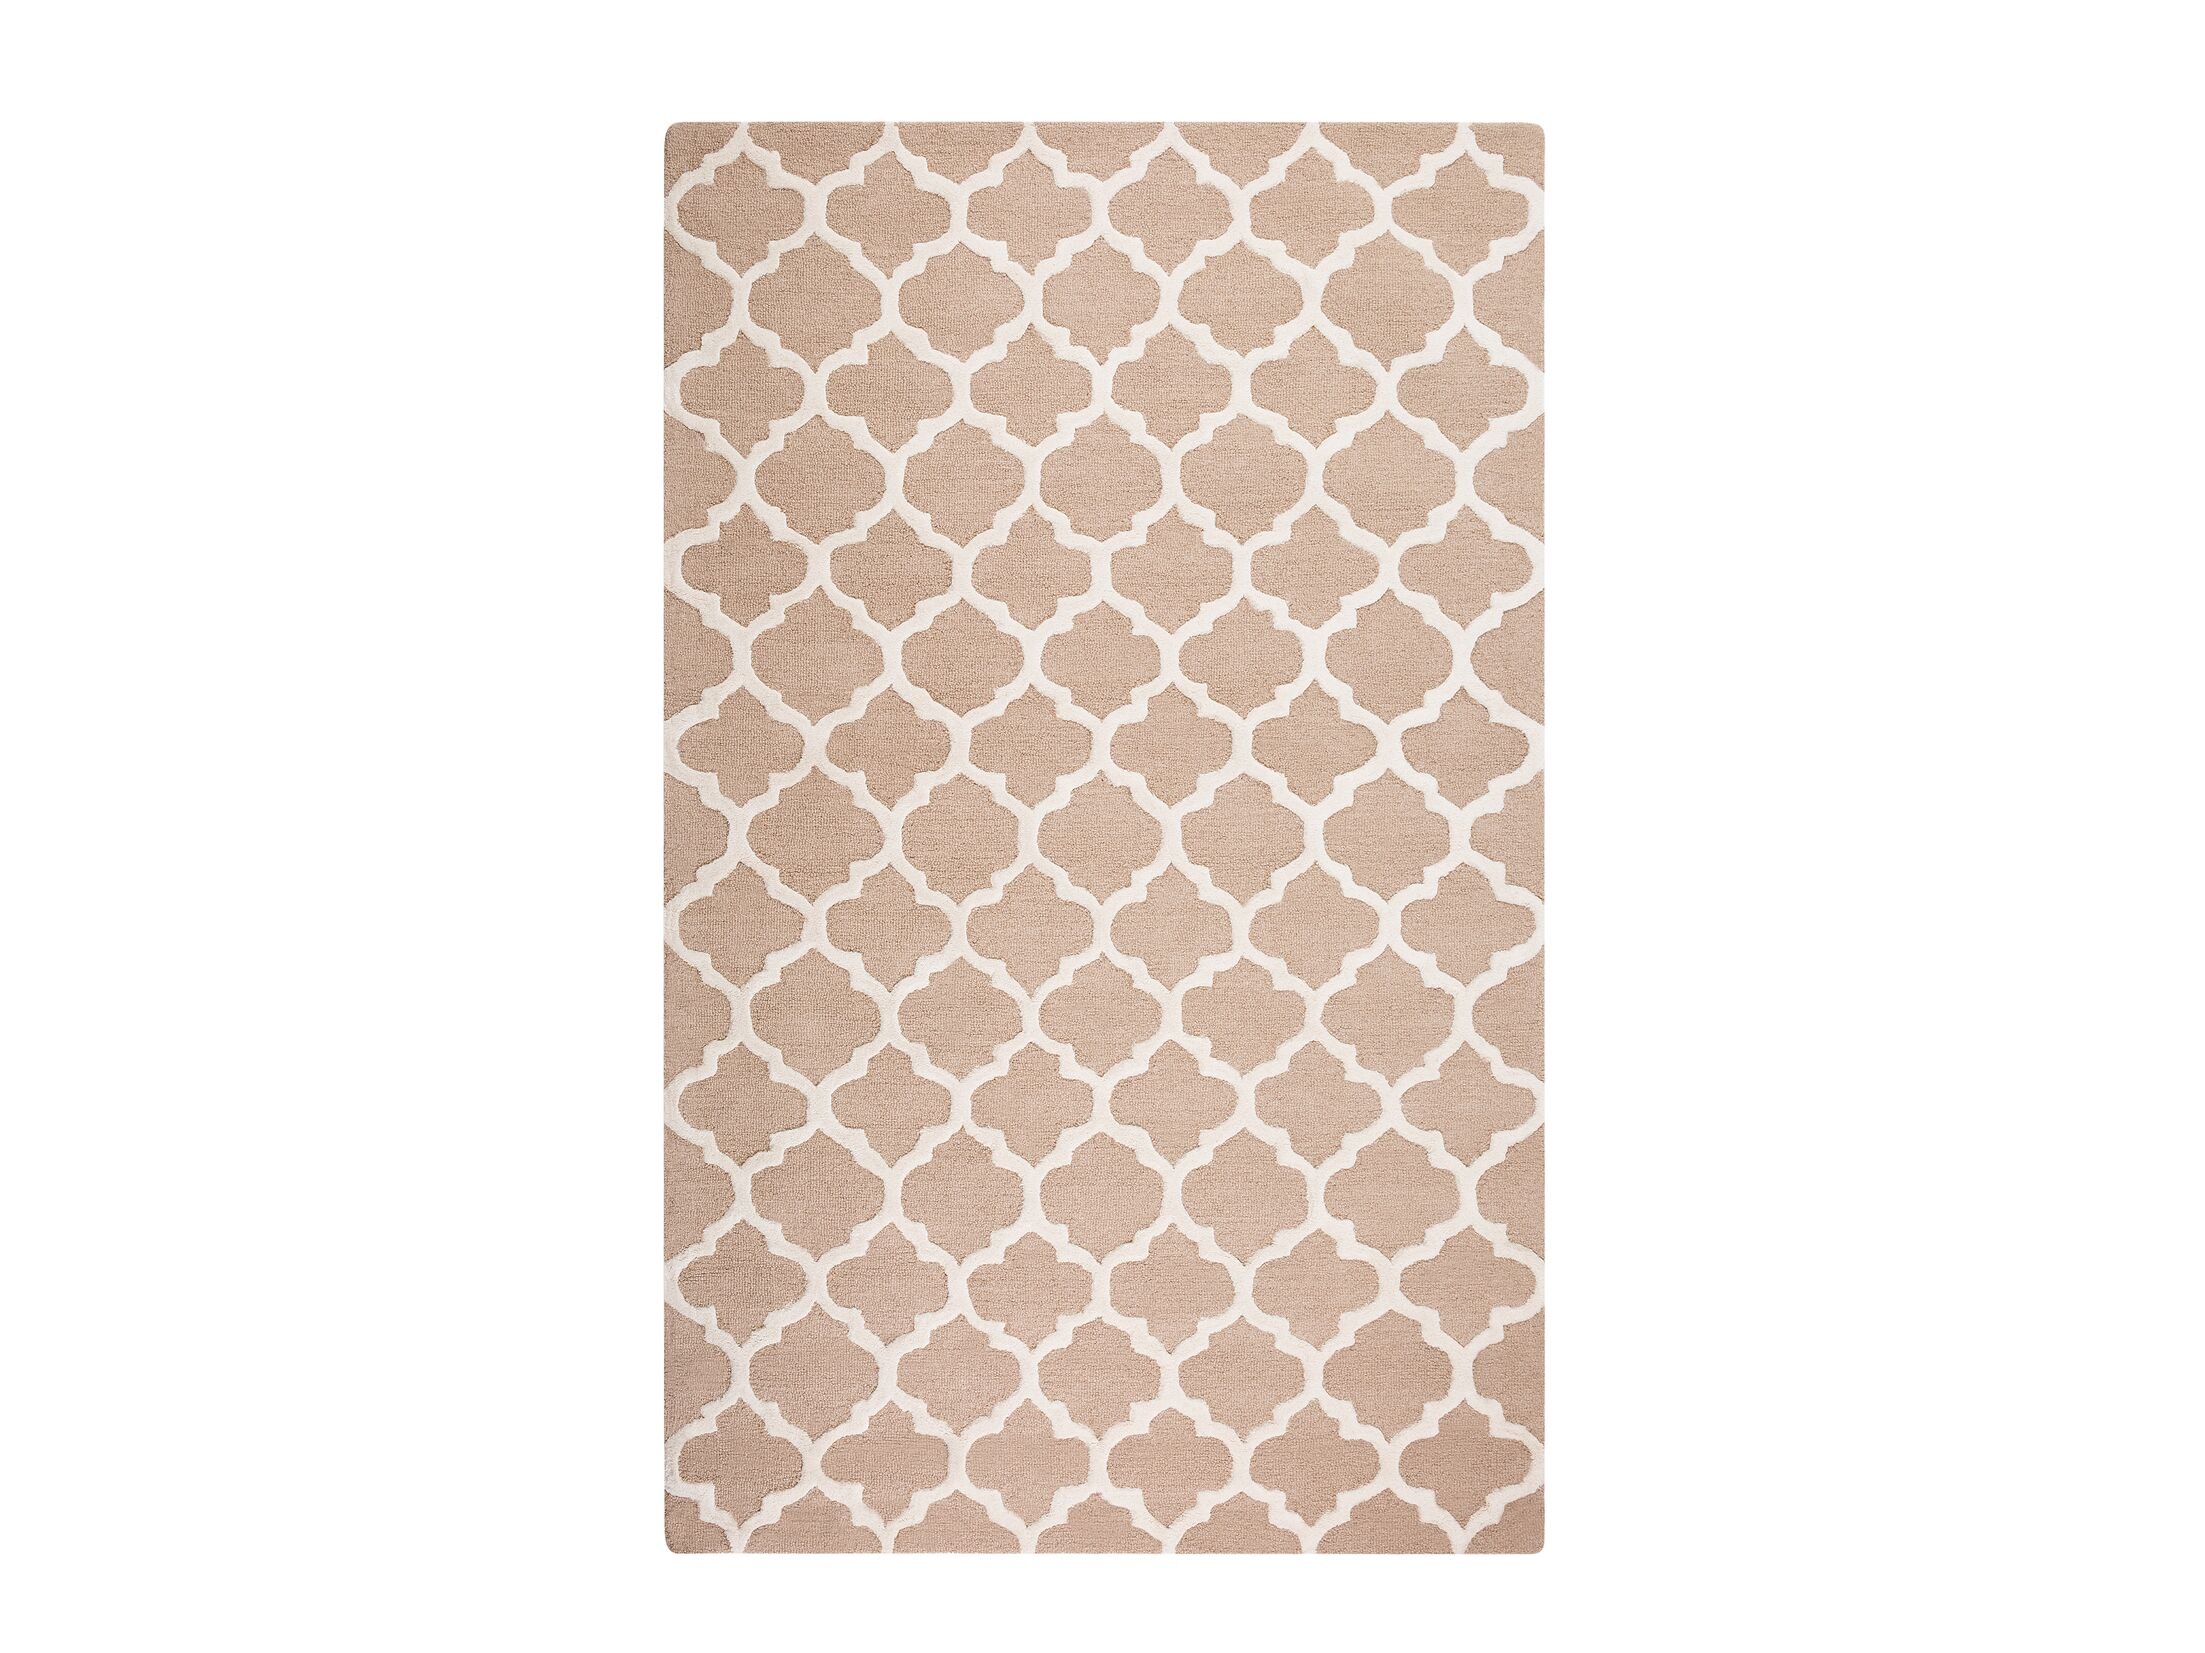 Erbaa Hand-Tufted Beige Area Rug Rug Size: Rectangle 5'2